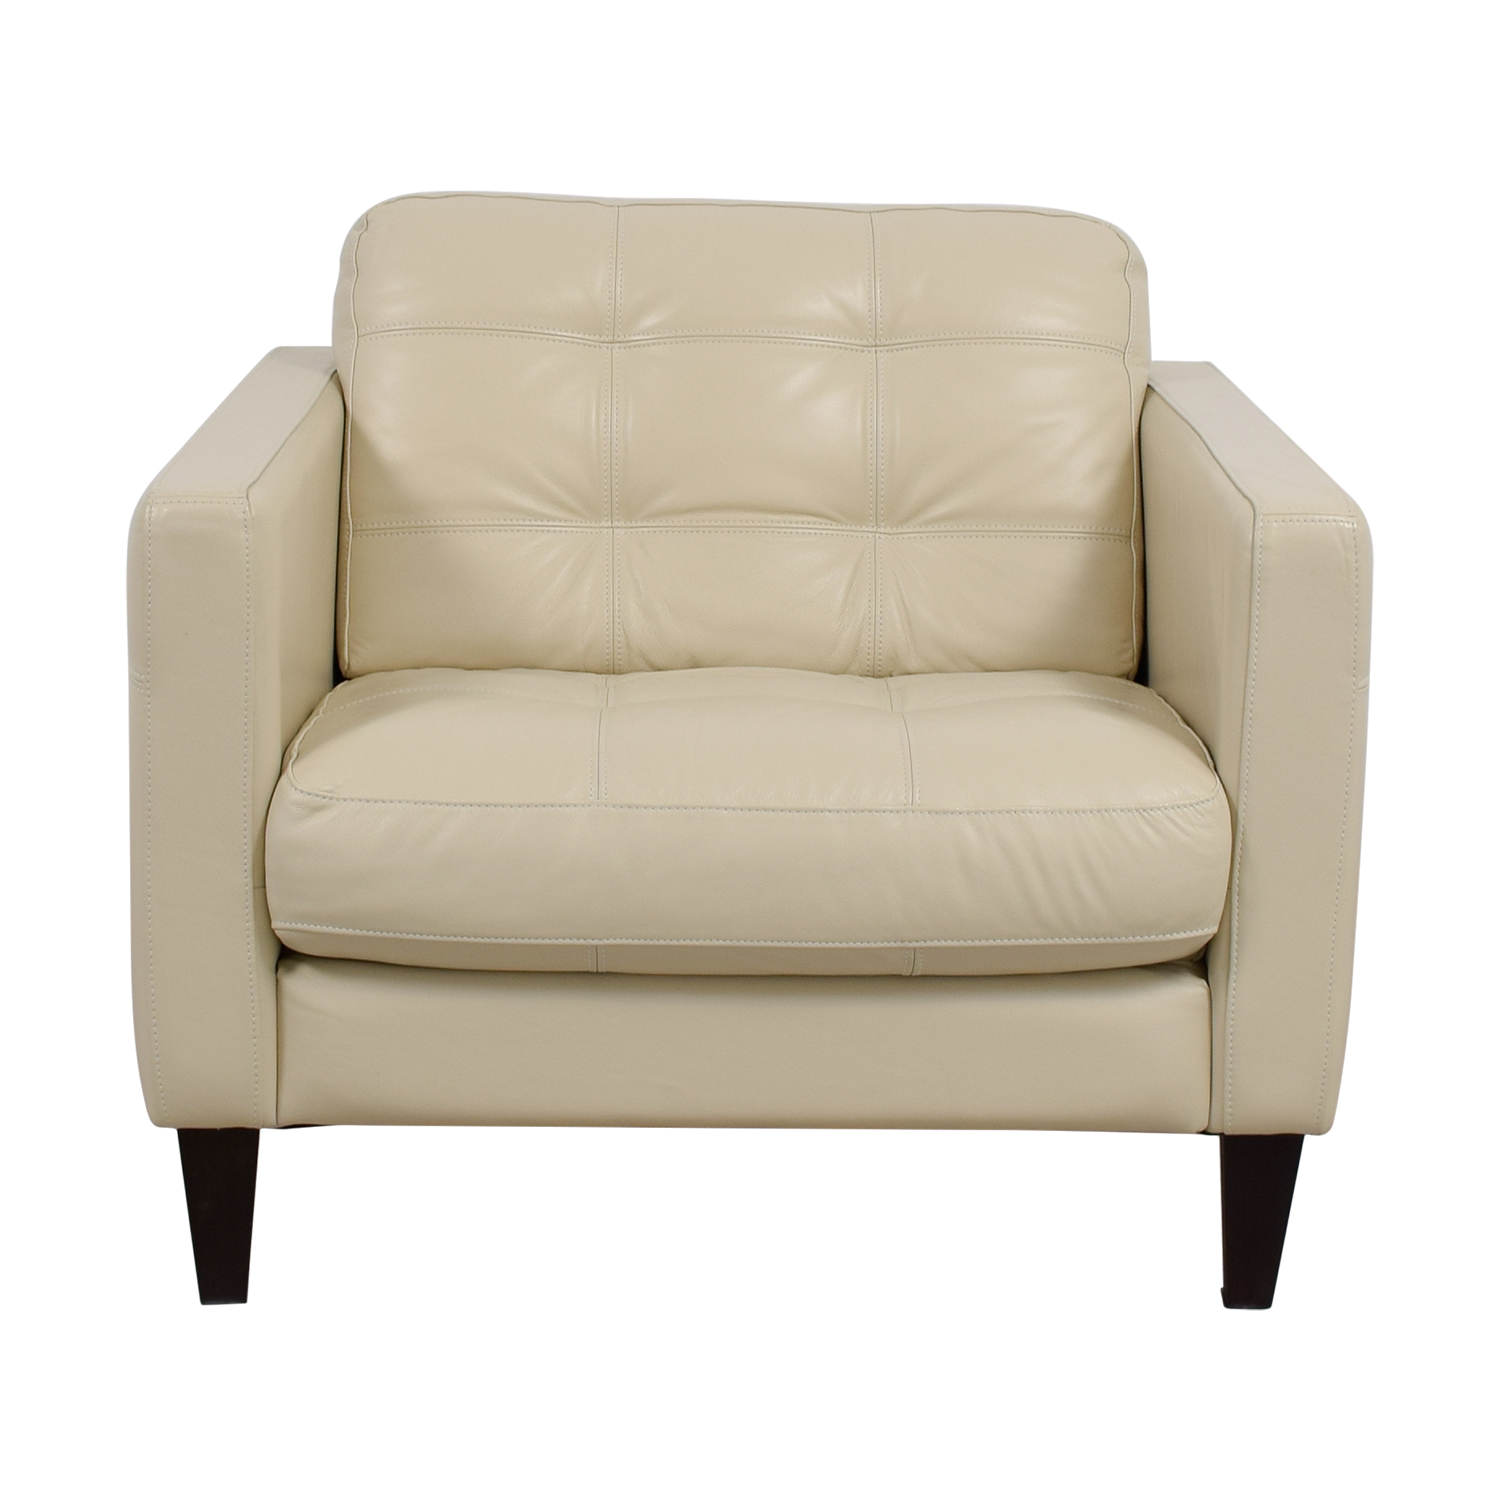 48 Off Macy S Macy S Milano White Leather Tufted Accent